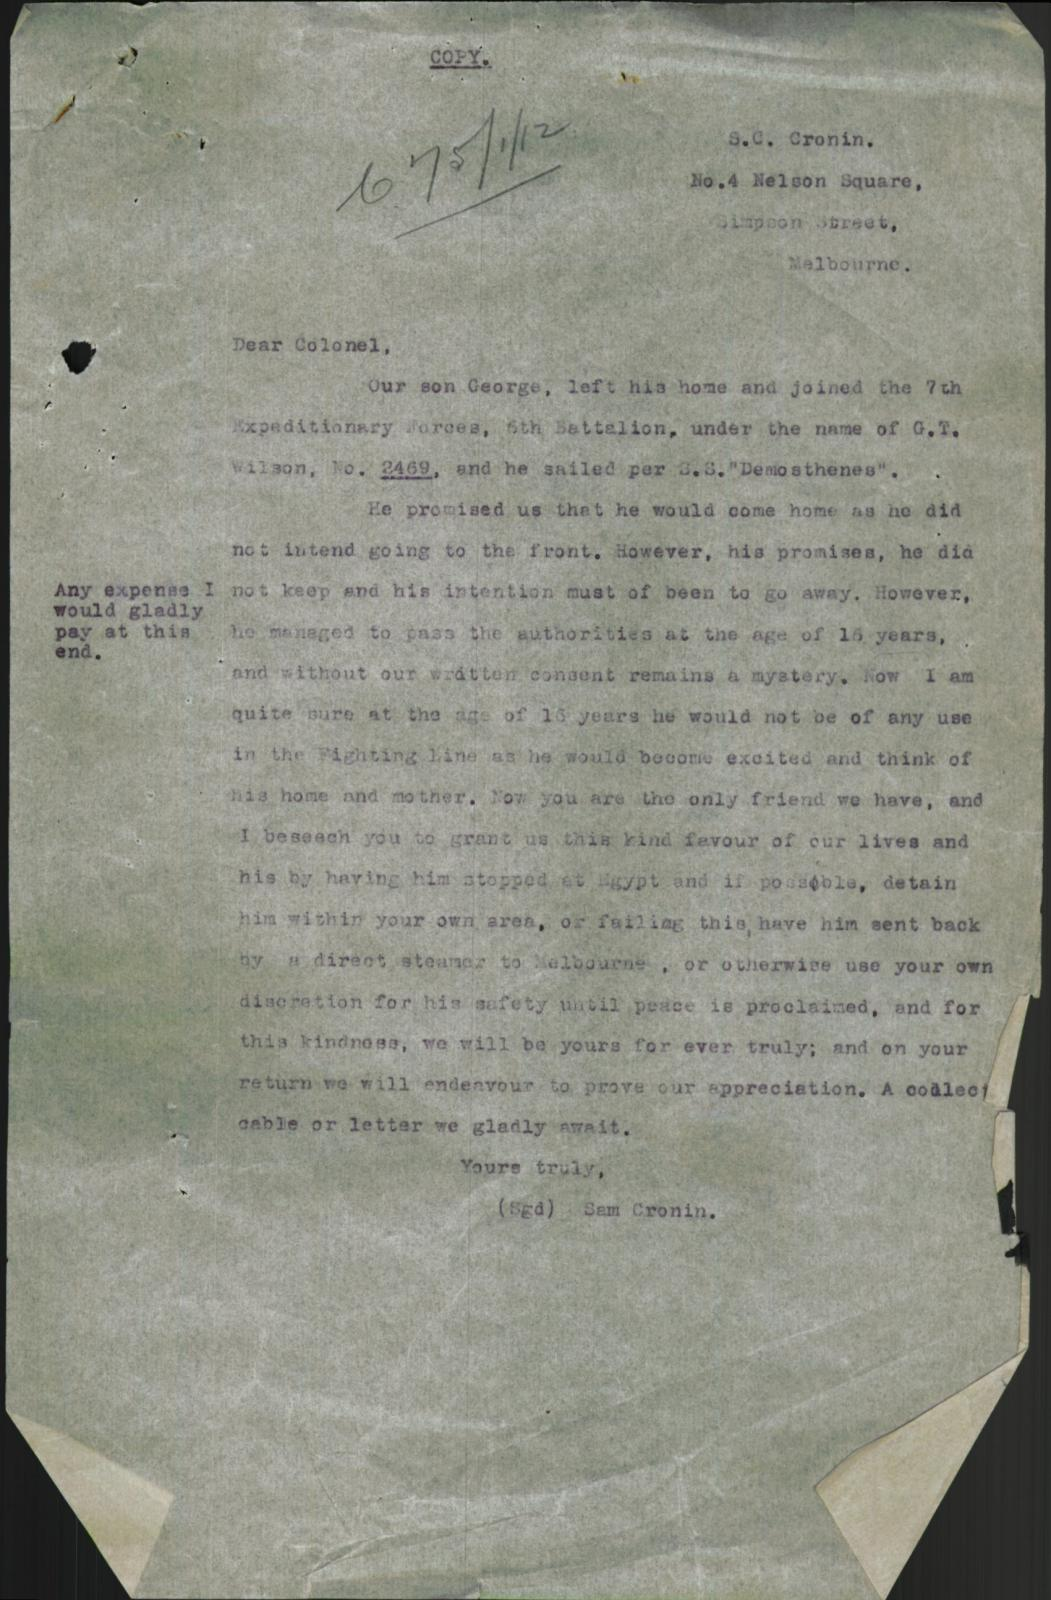 Letter from Sam Cronin advising that his son is underage